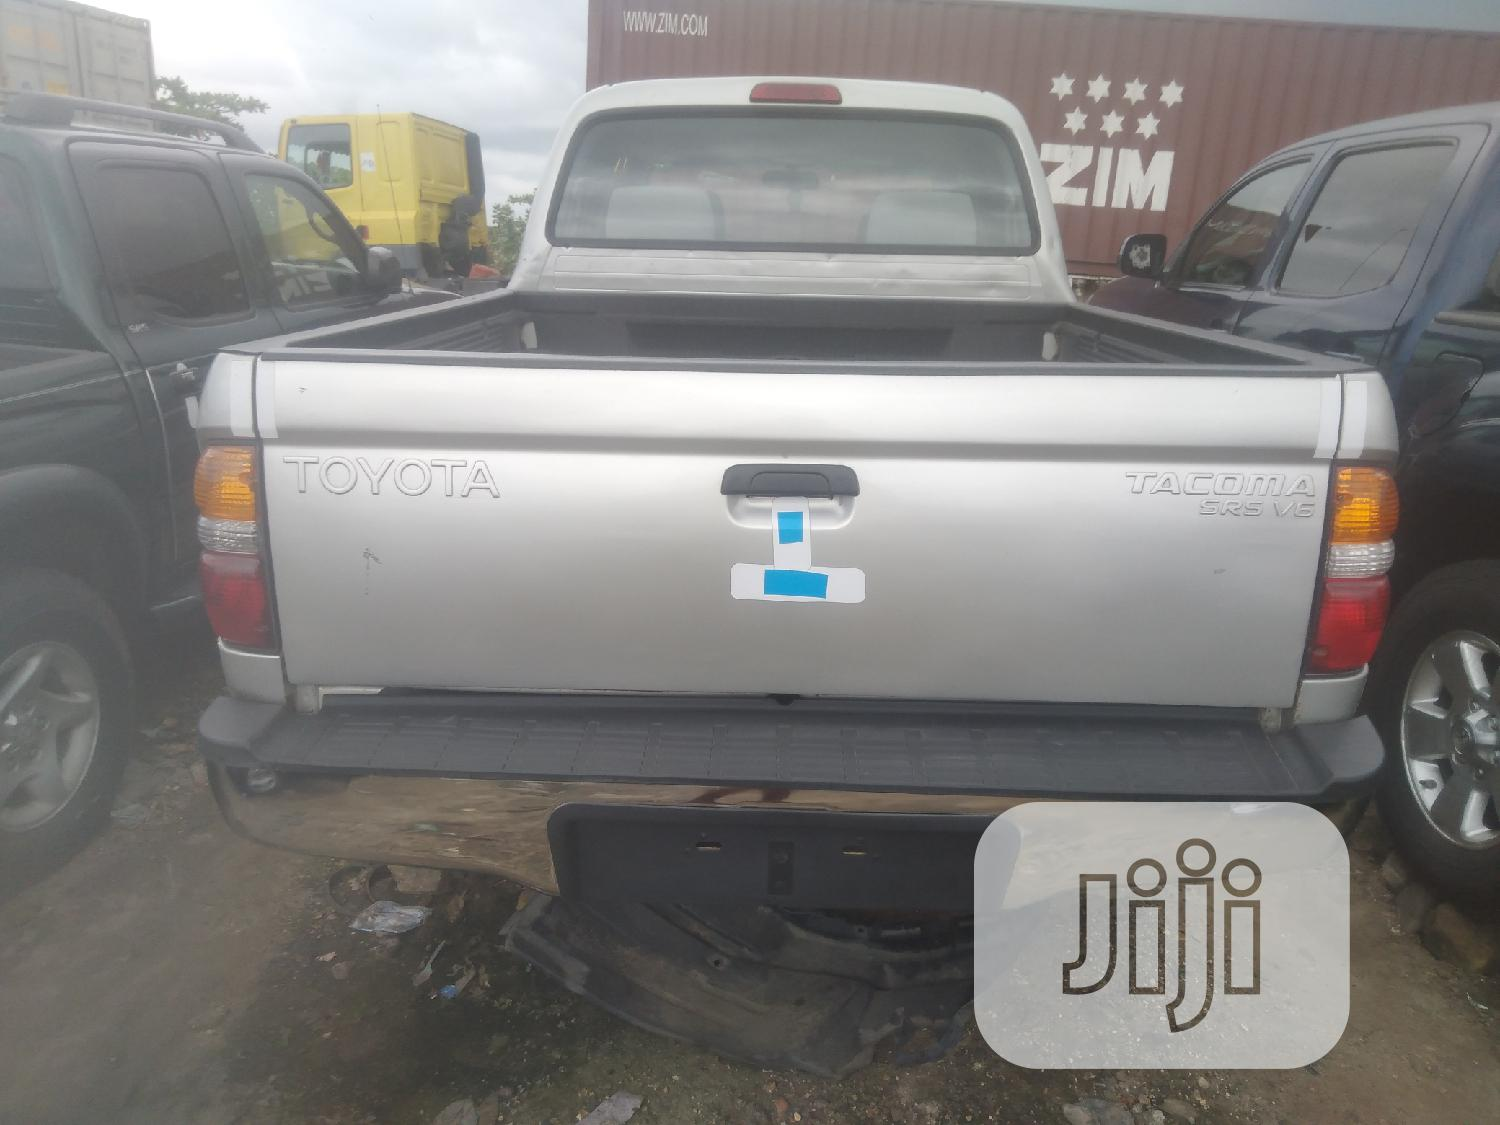 Archive: Toyota Tacoma 2004 Double Cab V6 4WD Silver